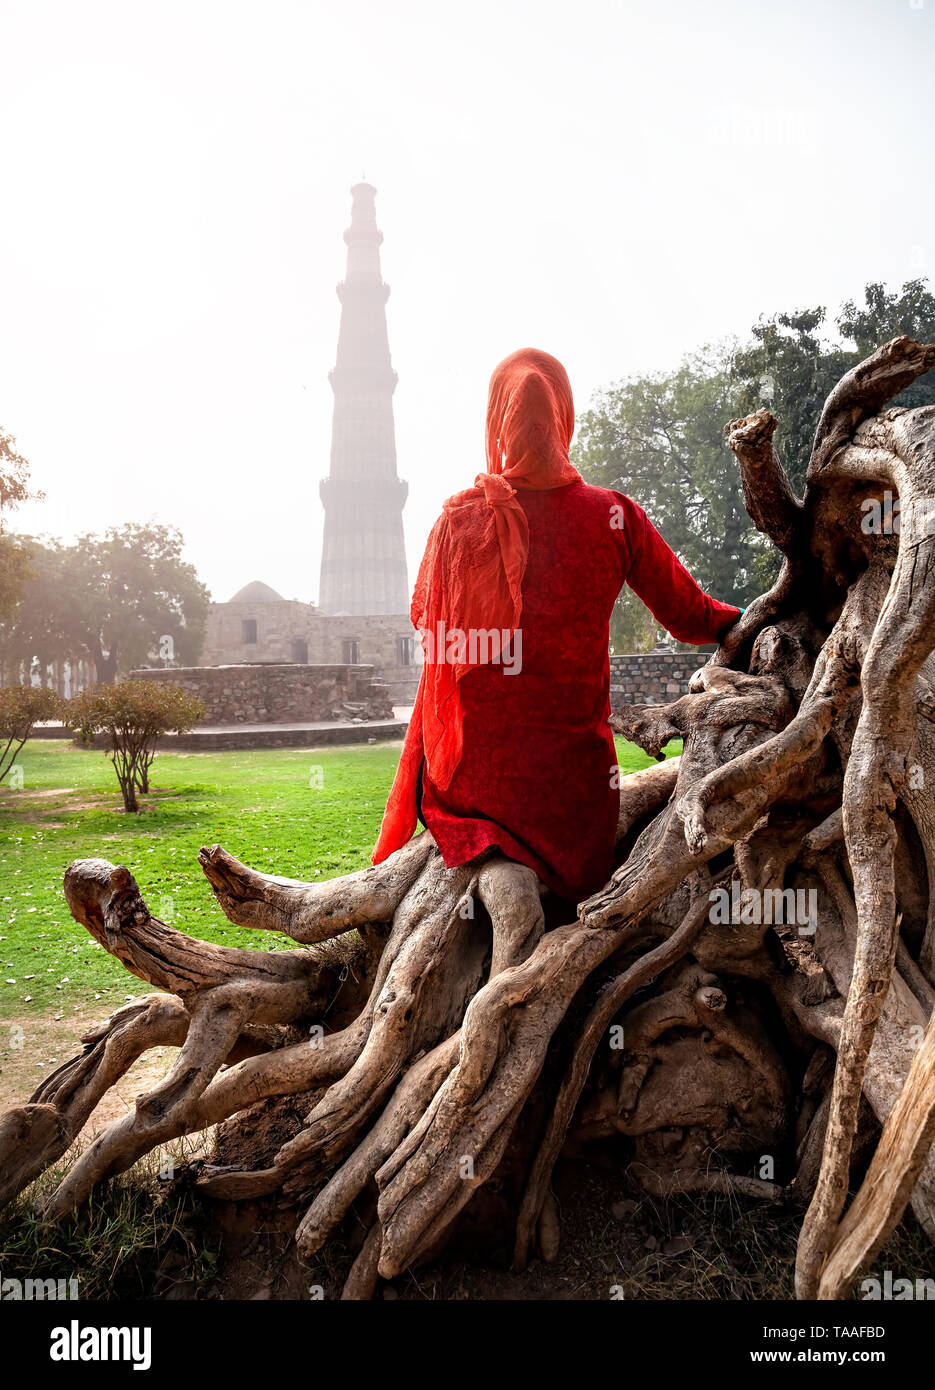 Woman in red costume sitting on the stump and looking at Qutub Minar tower in Old Delhi, India - Stock Image